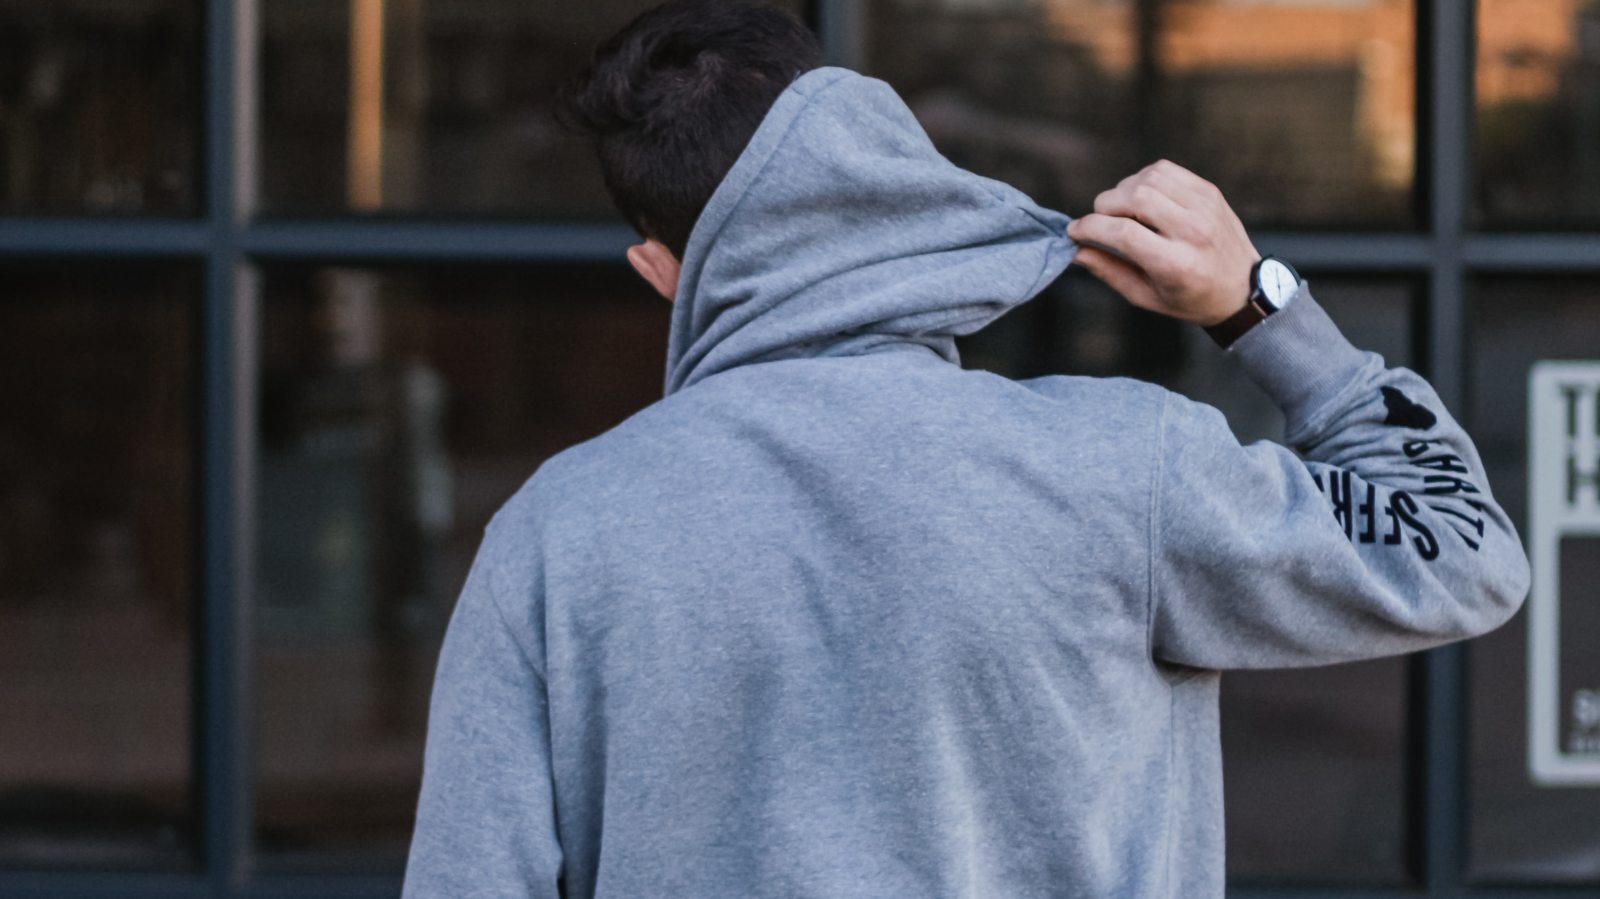 putting on a hoody